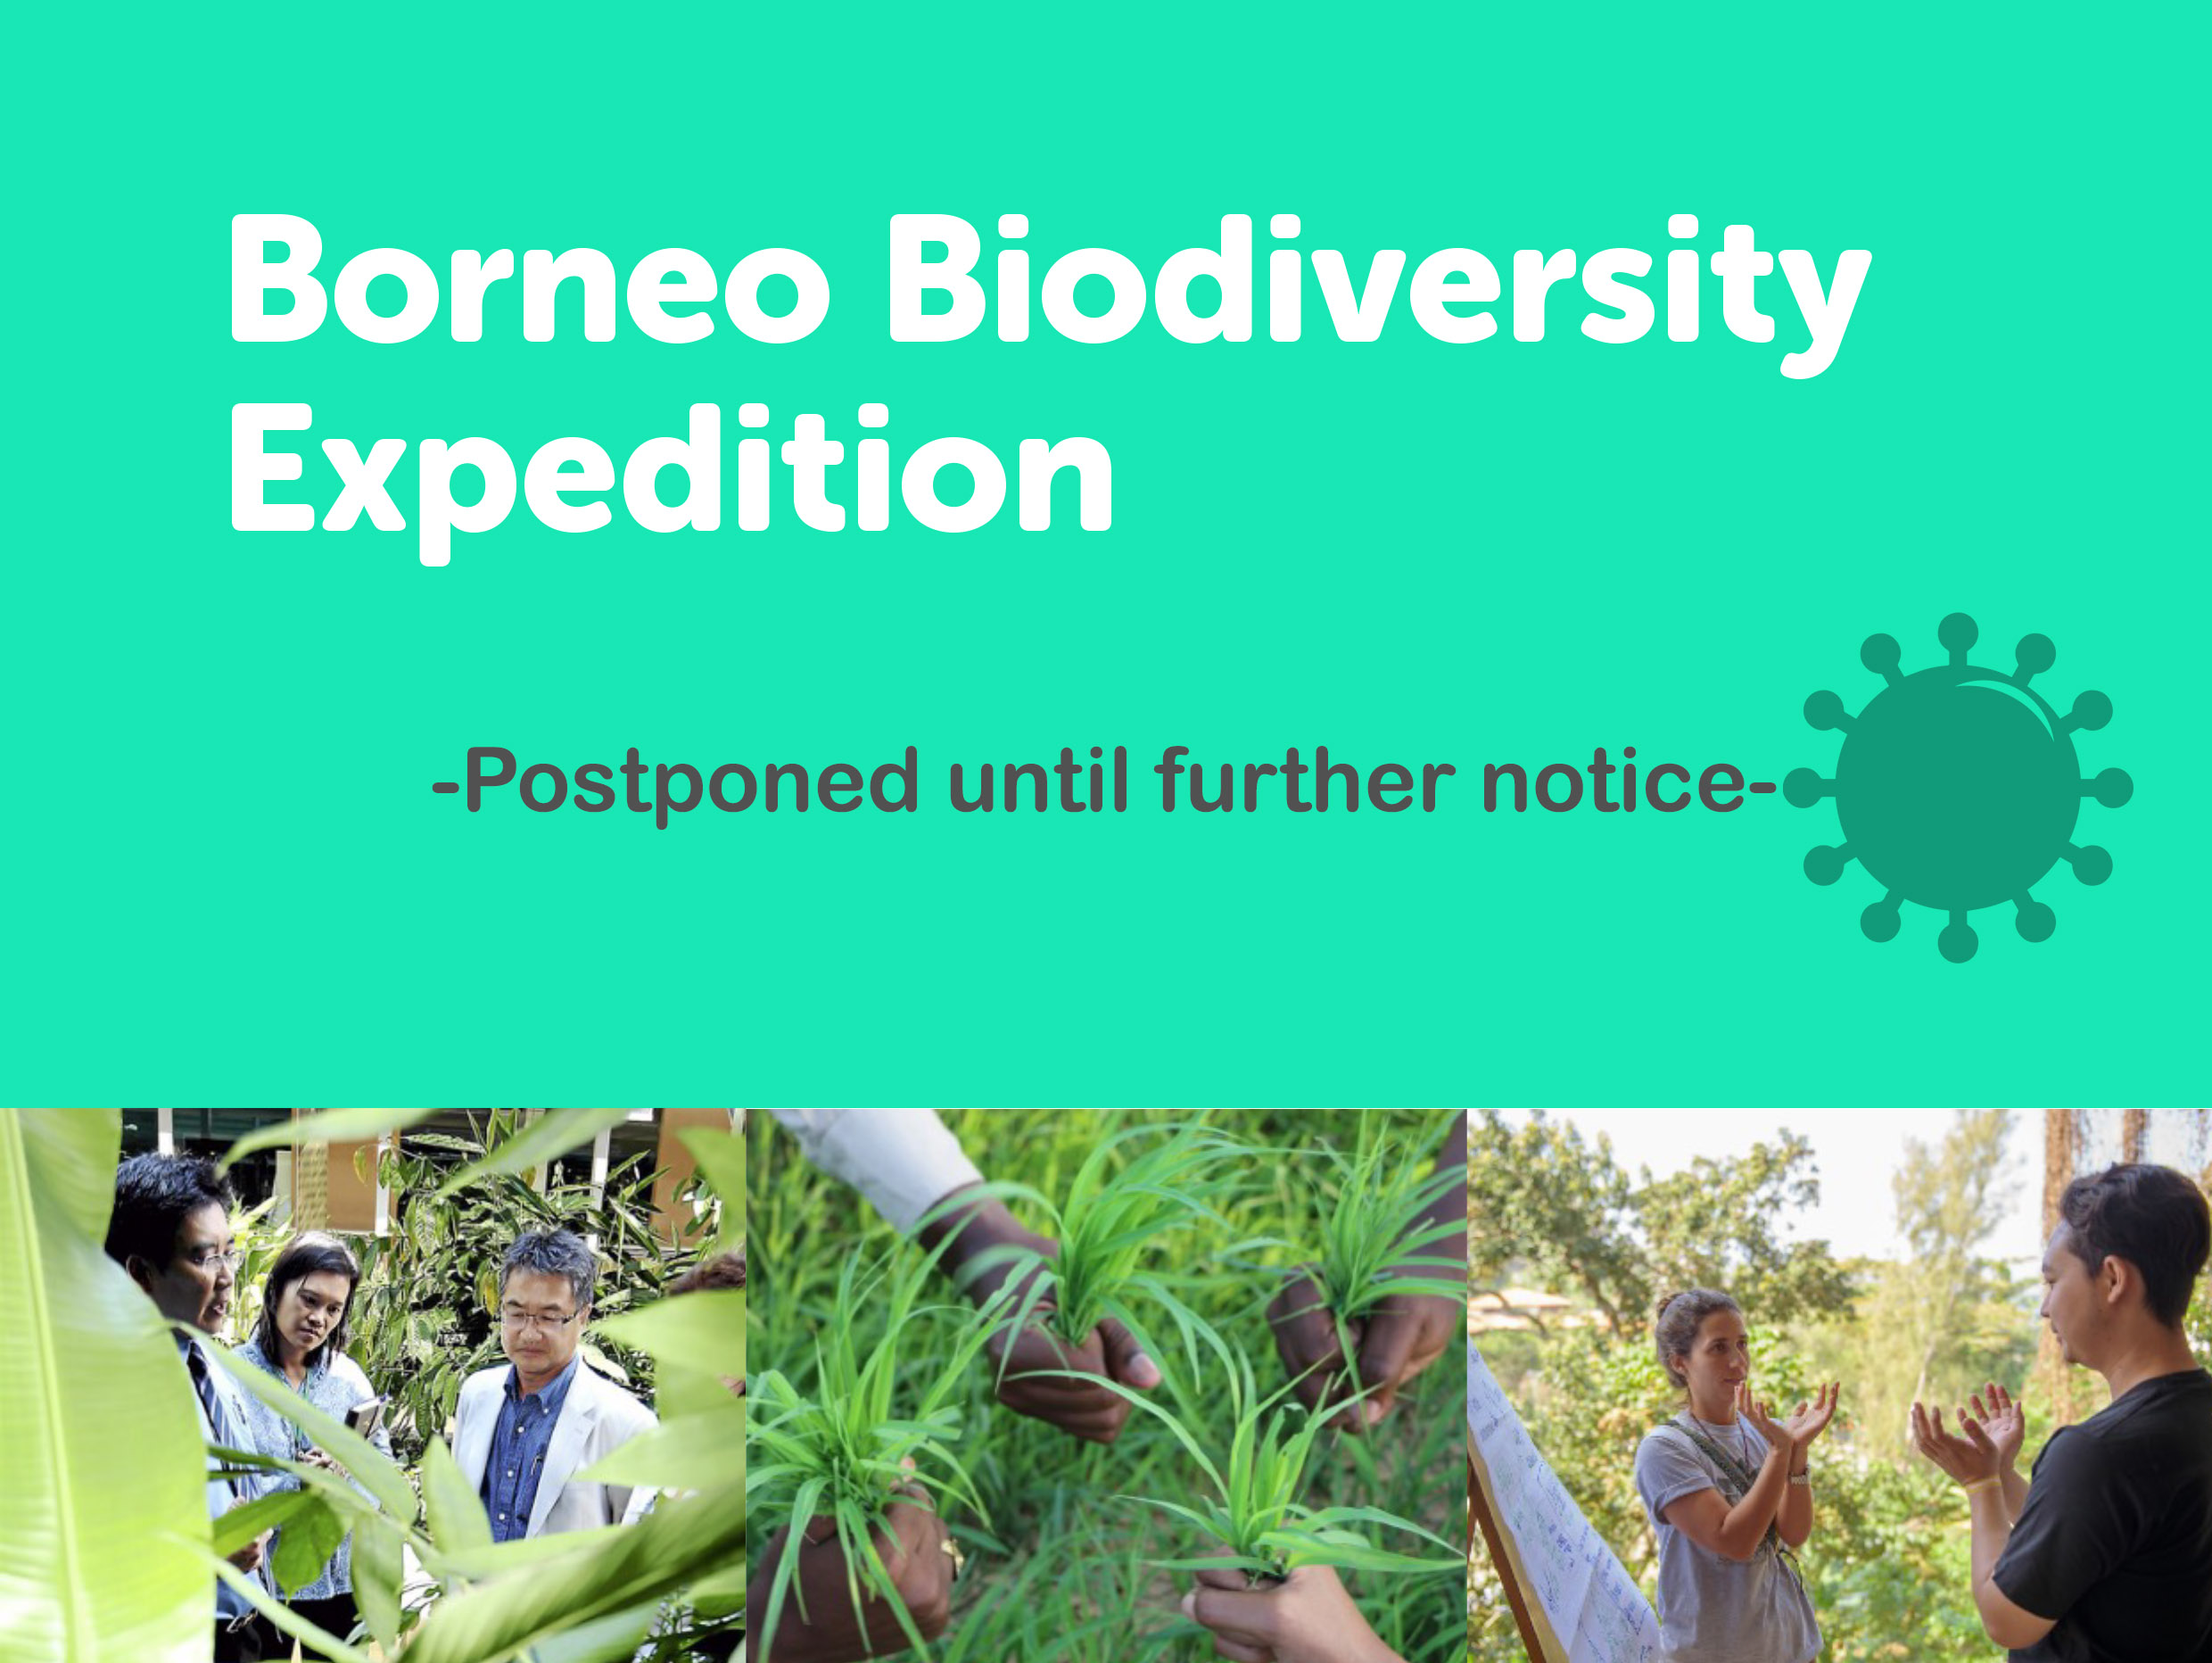 Borneo Biodiversity Expedition